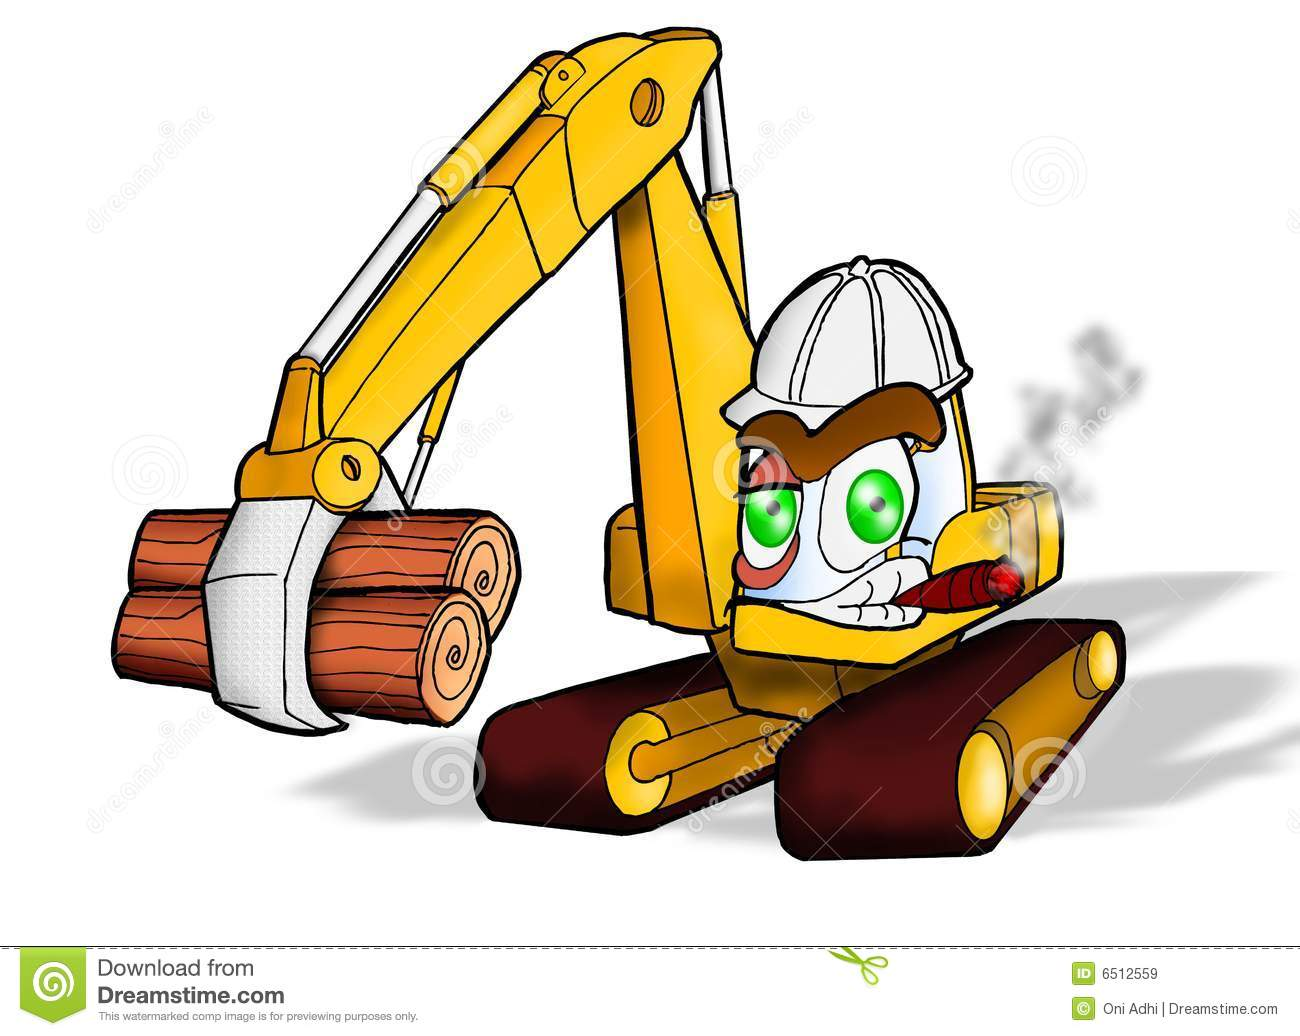 Equipment Clip Art Construction Equipment Clip Art Heavy Equipment